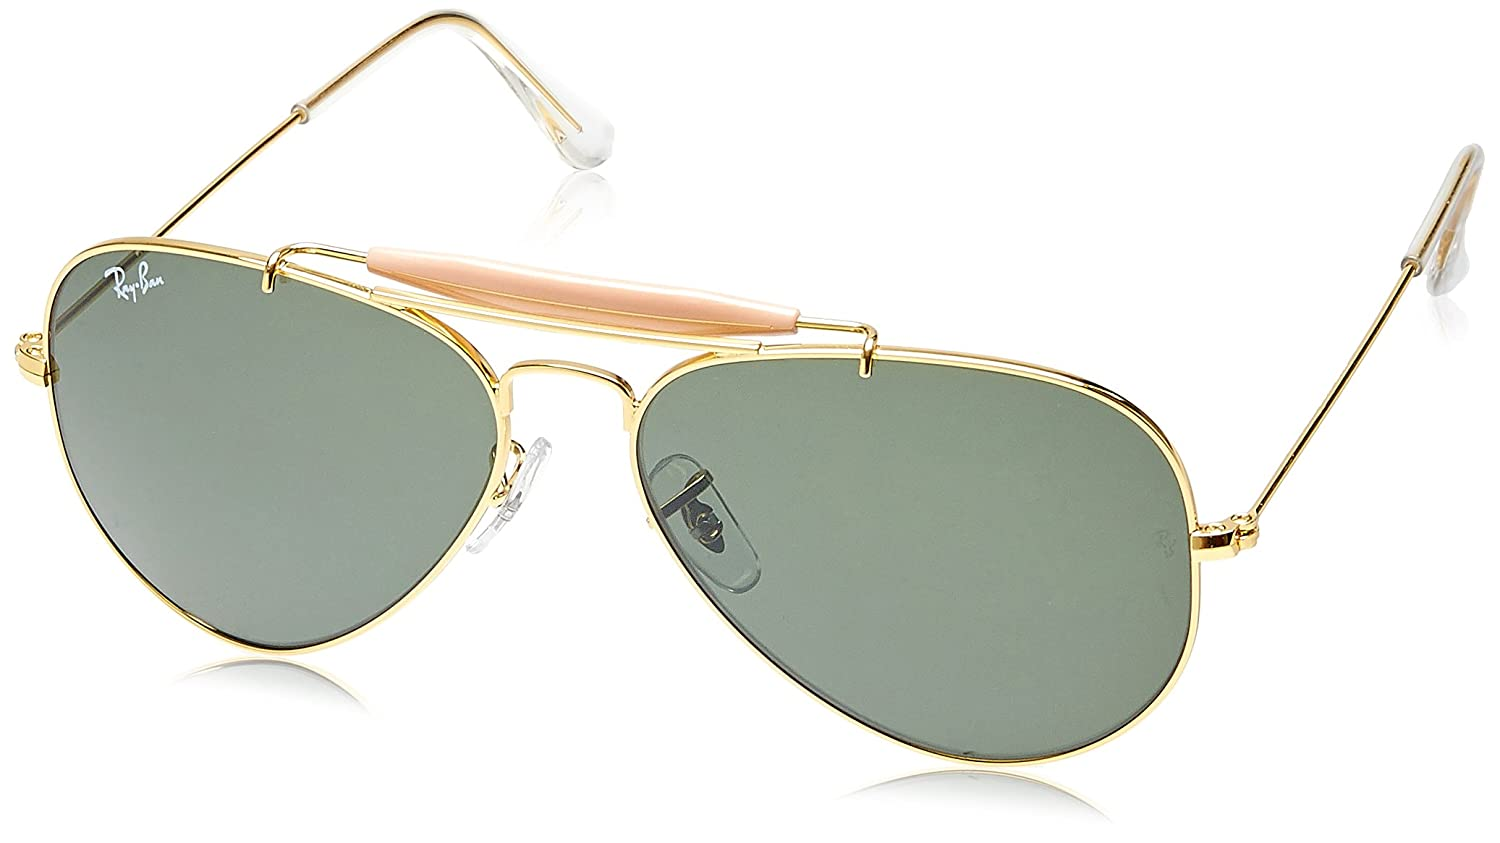 Buy Rayban Aviator Unisex Sunglasses Rb3129 W0226 58 14 58 Millimeters Green At Amazon In